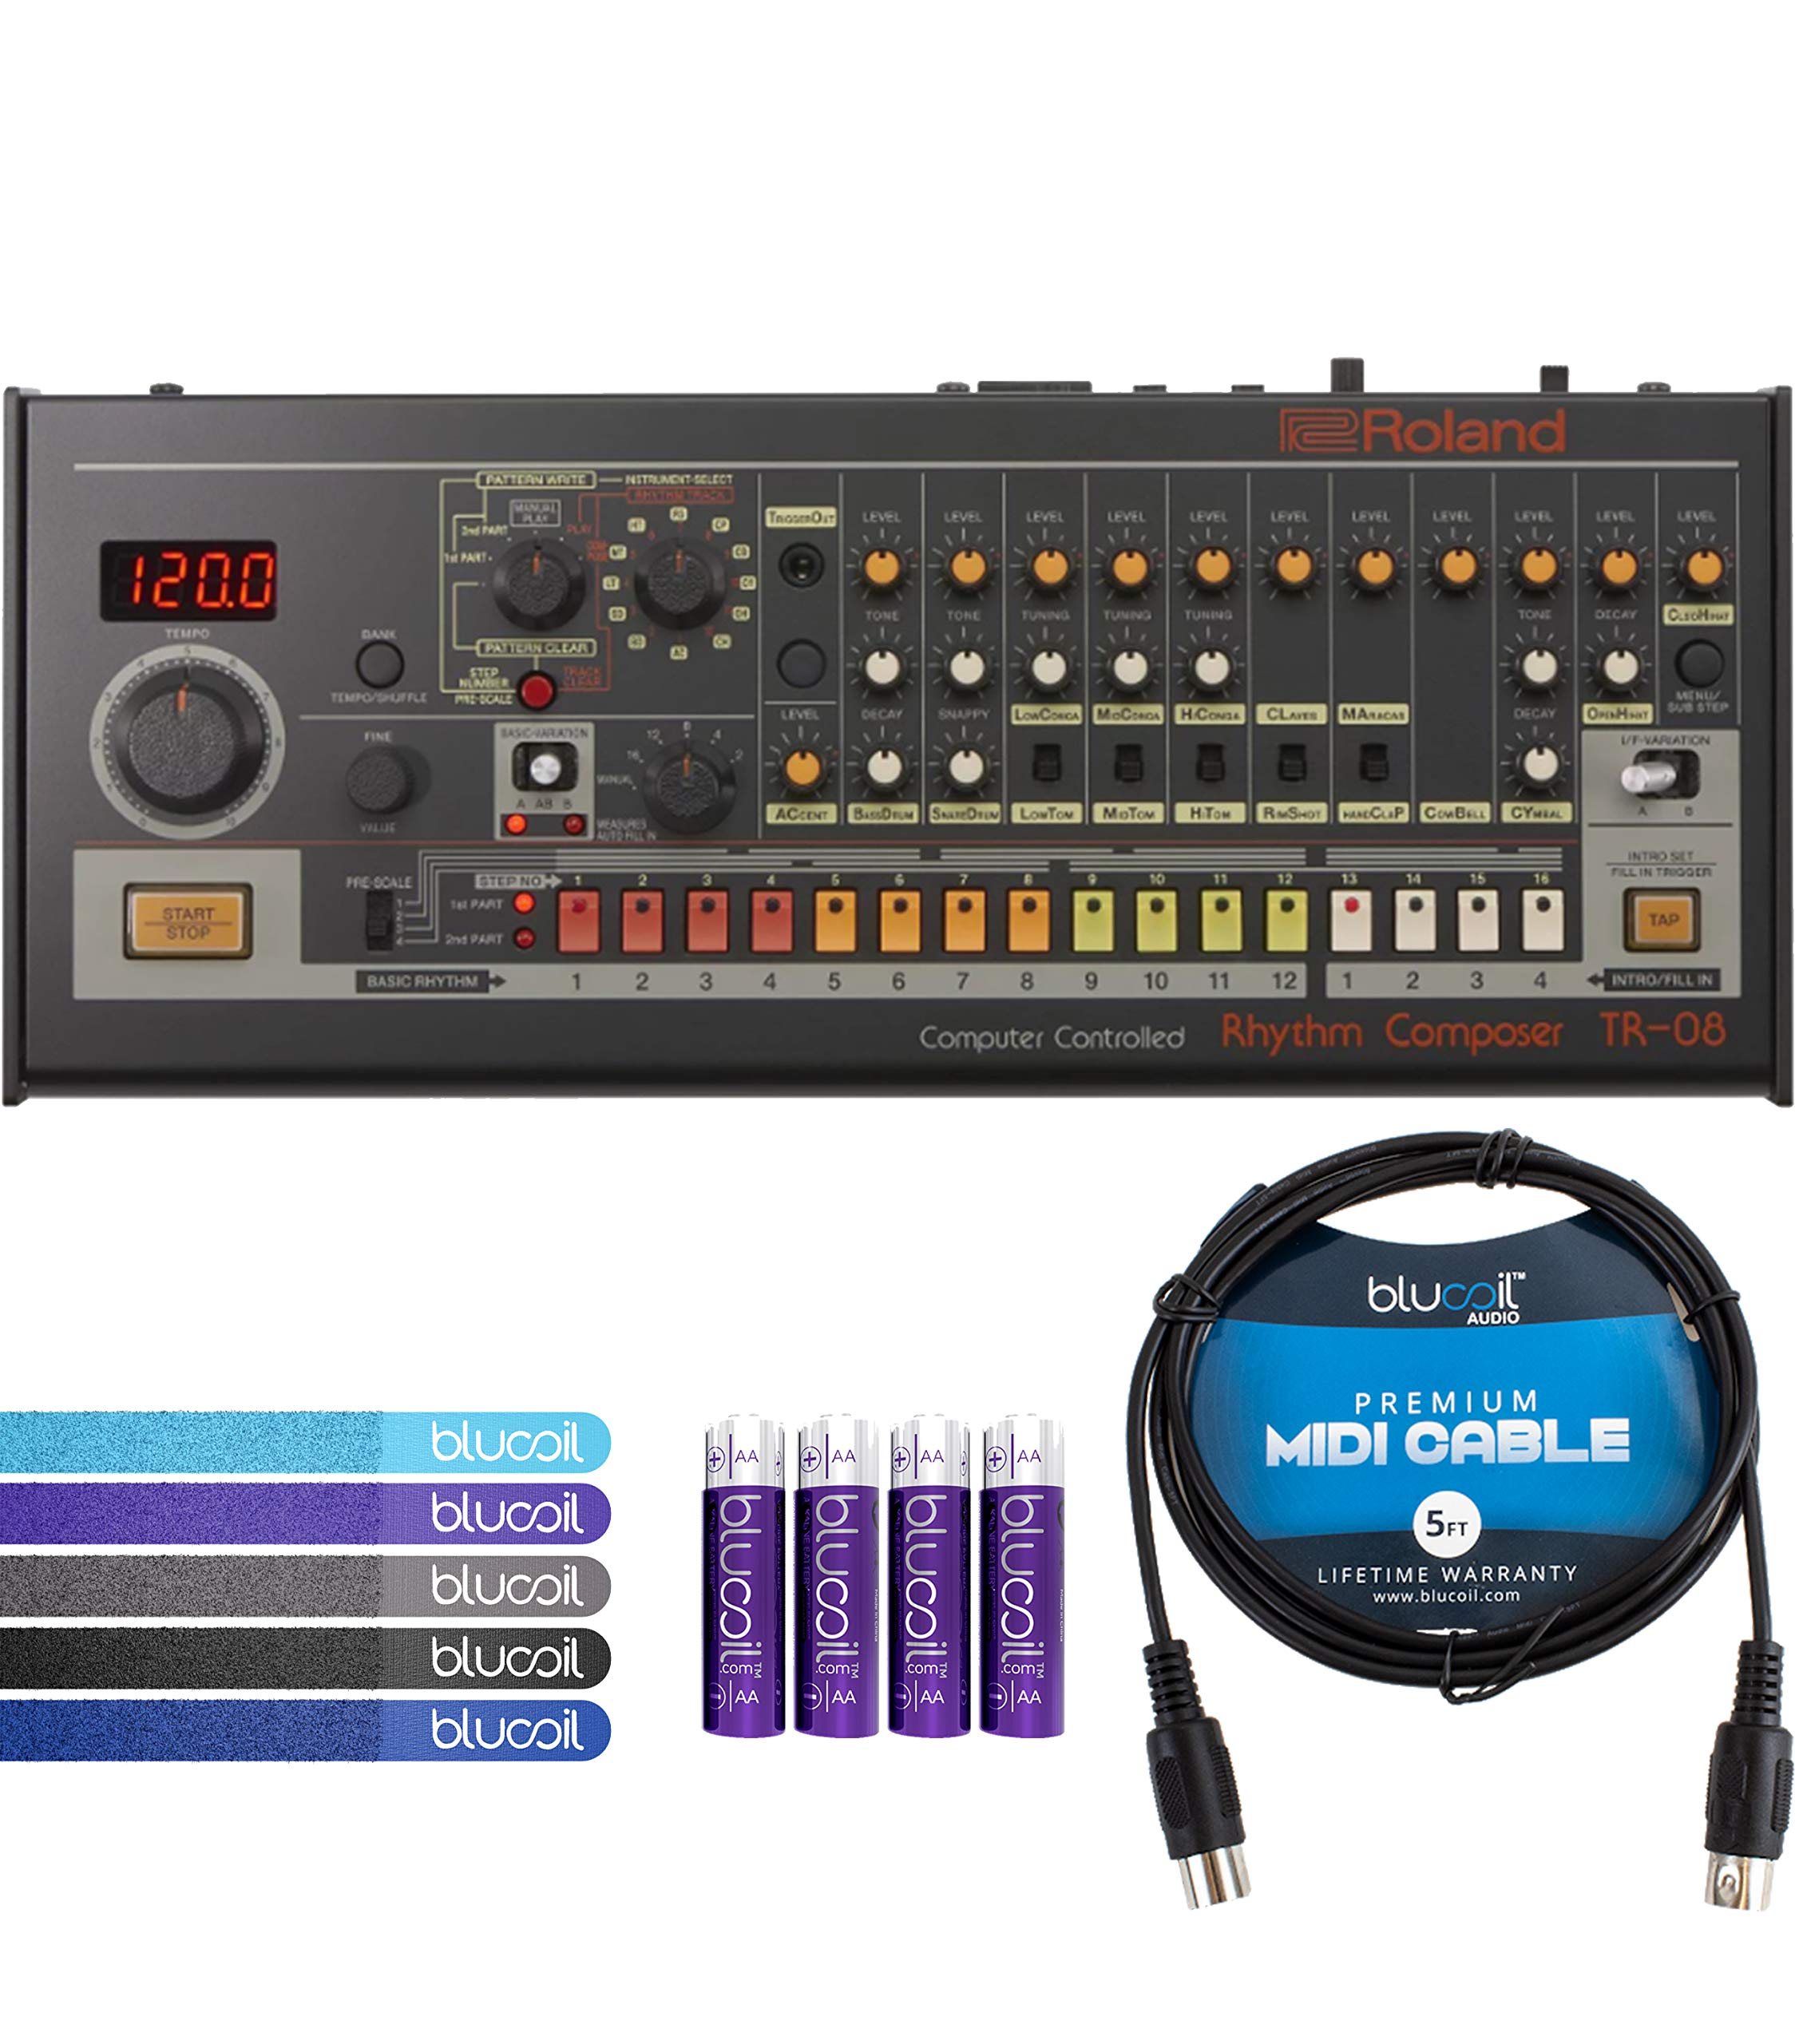 Roland TR-08 Rhythm Composer Sound Module Bundle with Blucoil 5-Ft MIDI Cable, 5-Pack of Reusable Cable Ties and 4-Pack of AA Batteries